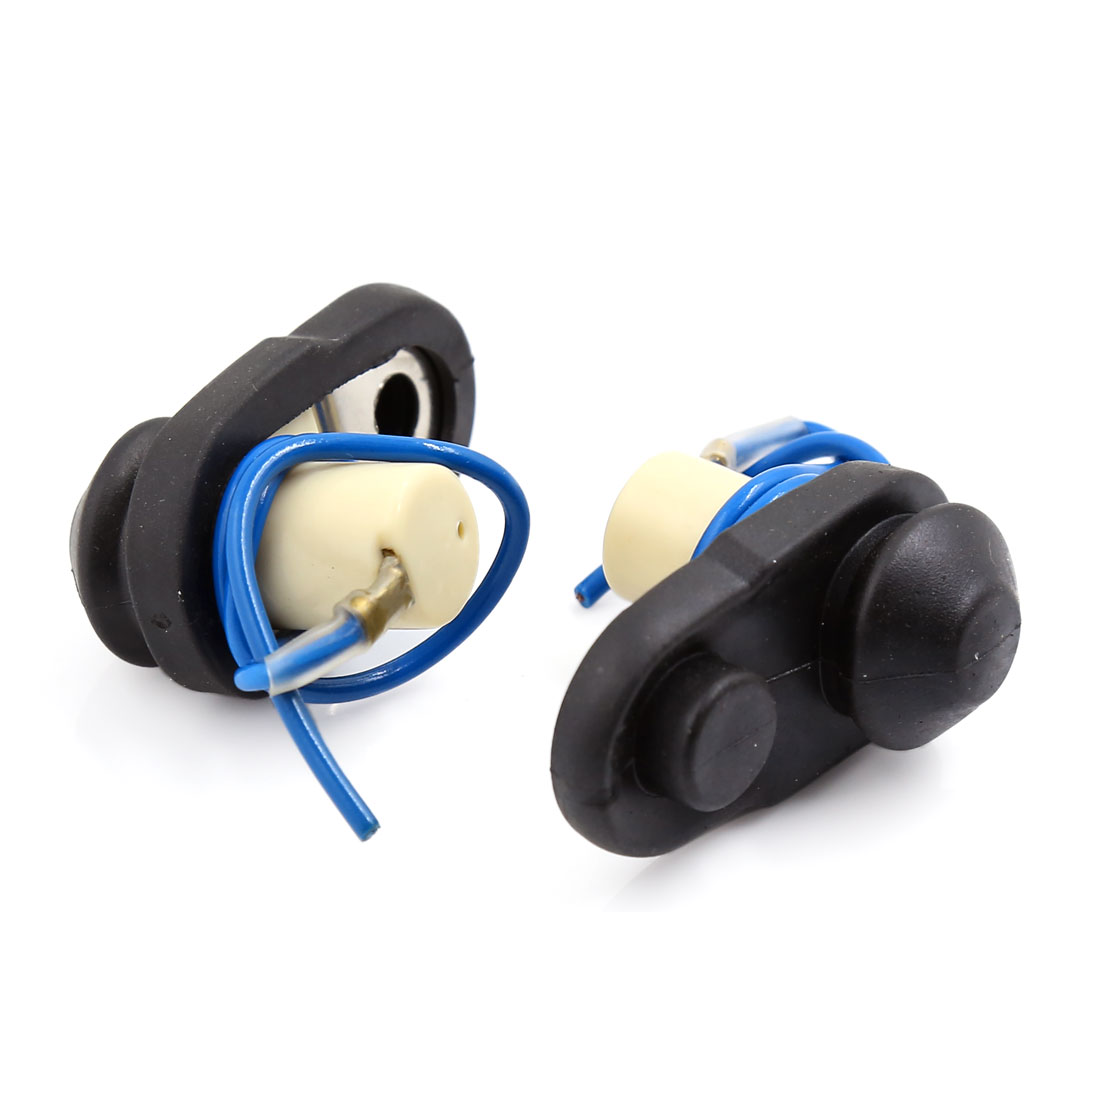 Universal Pre-wired Car Auto Door Courtesy Light Switch Button Black Blue 2pcs